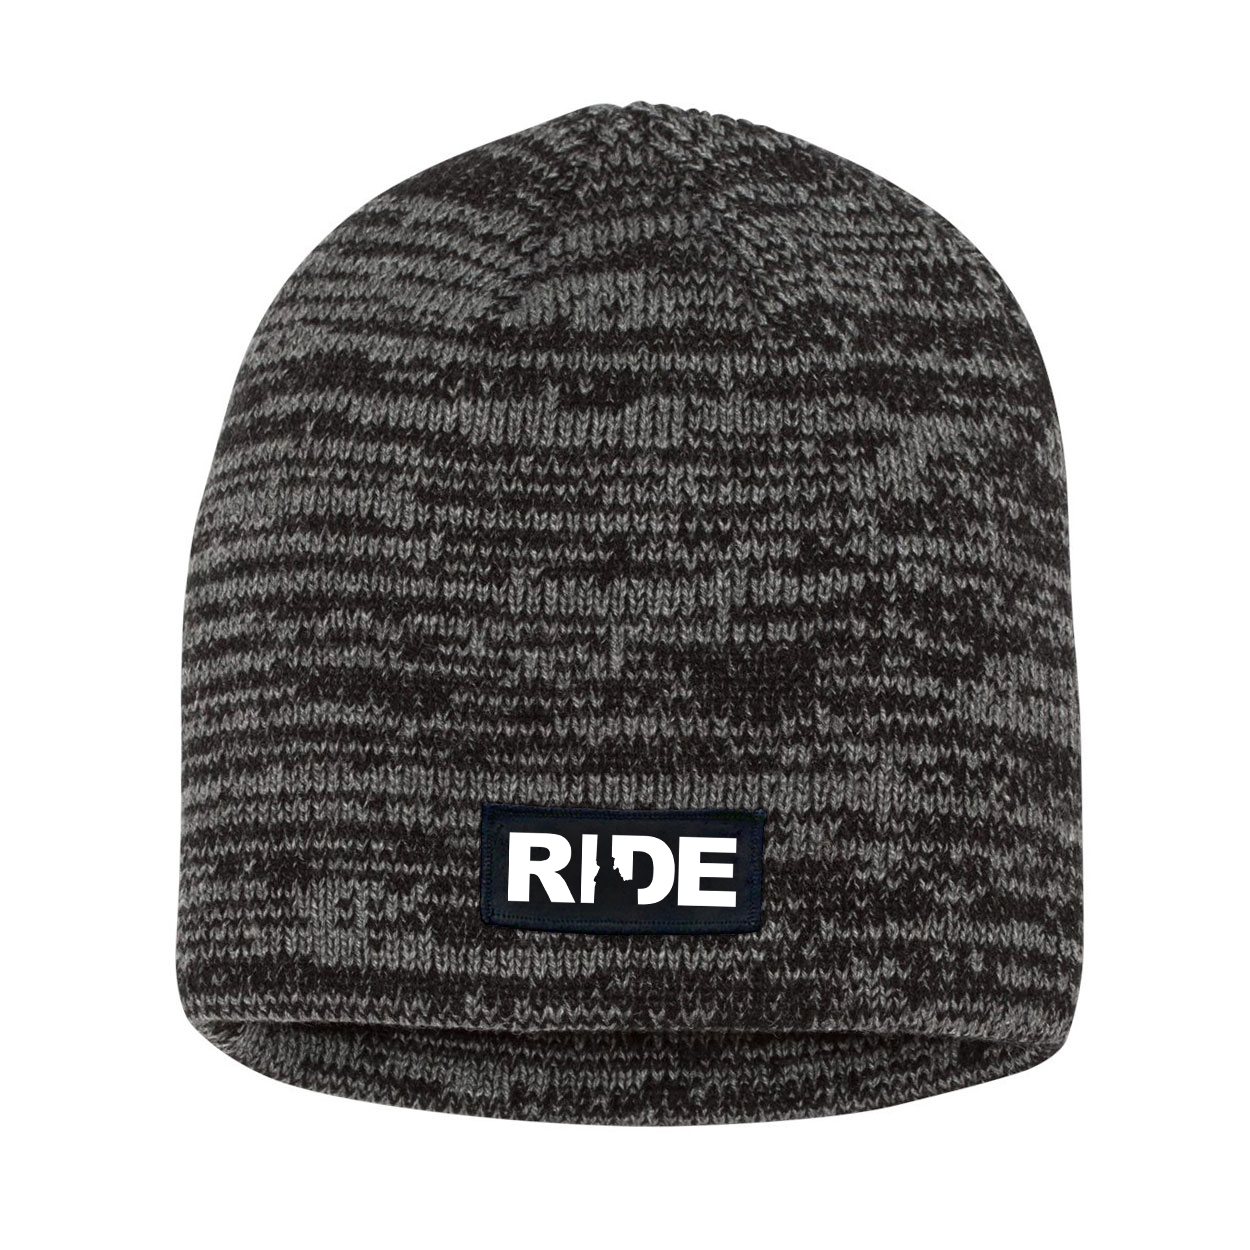 Ride Idaho Night Out Woven Patch Skully Marled Knit Beanie Black/Gray (White Logo)